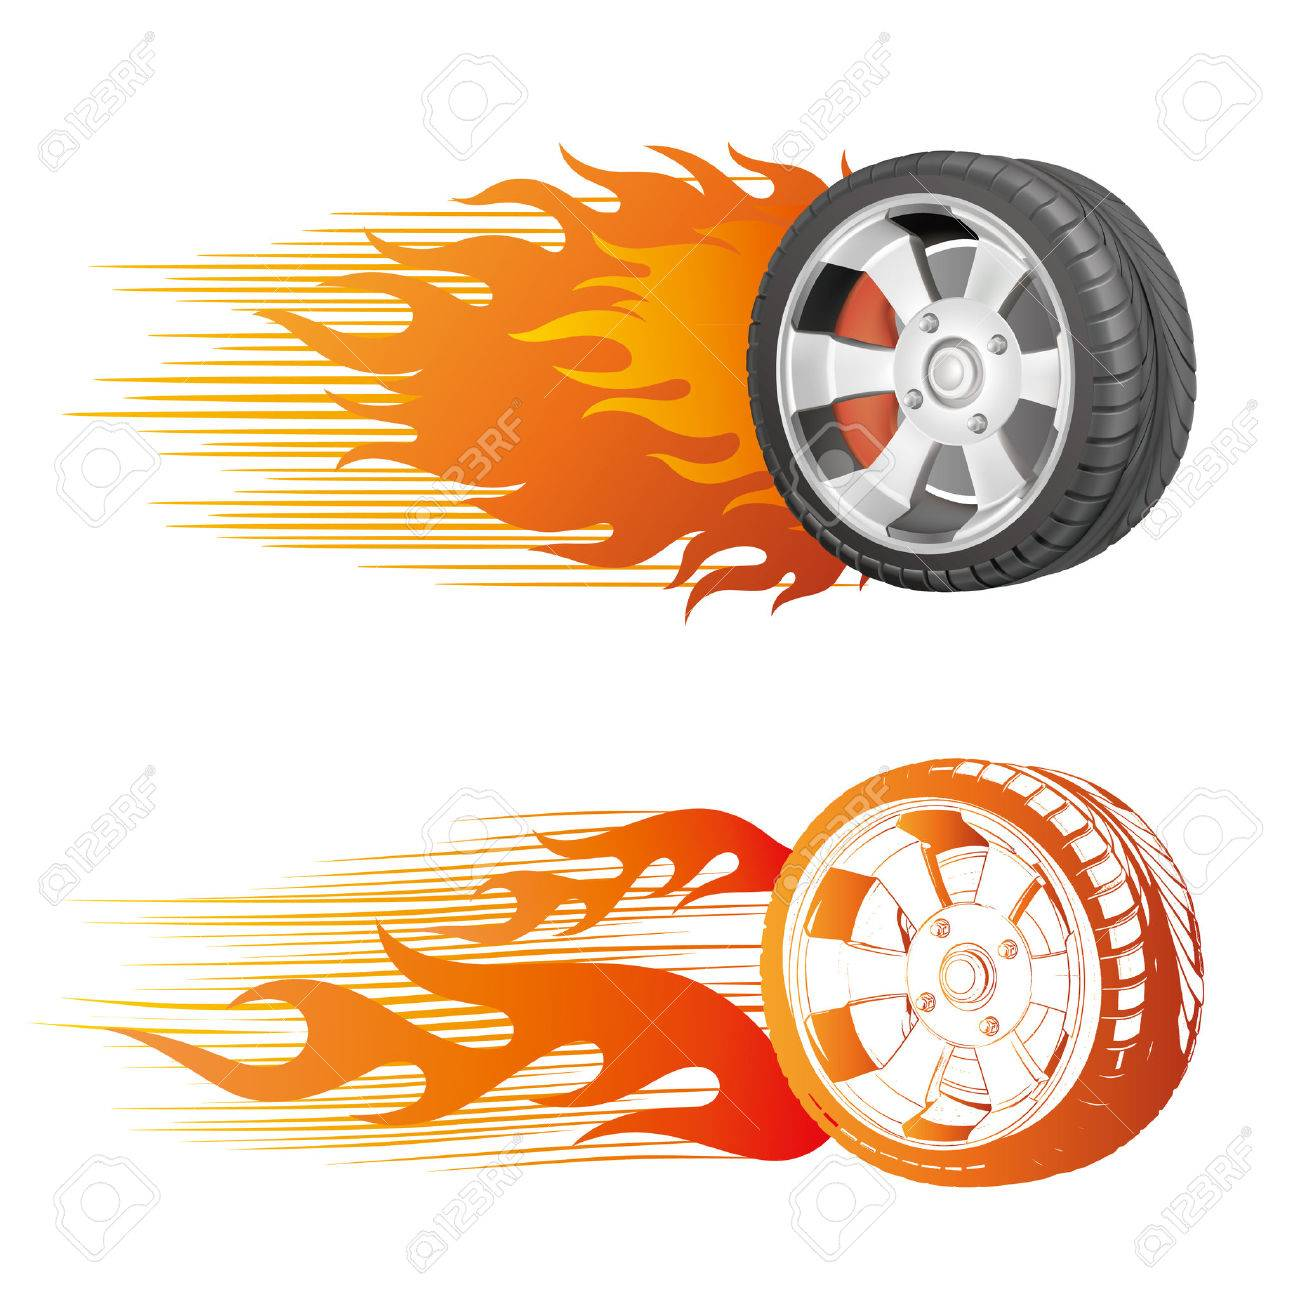 Fiery Racing Tire Royalty Free Cliparts, Vectors, And Stock ... for Racing Tire Vector  177nar